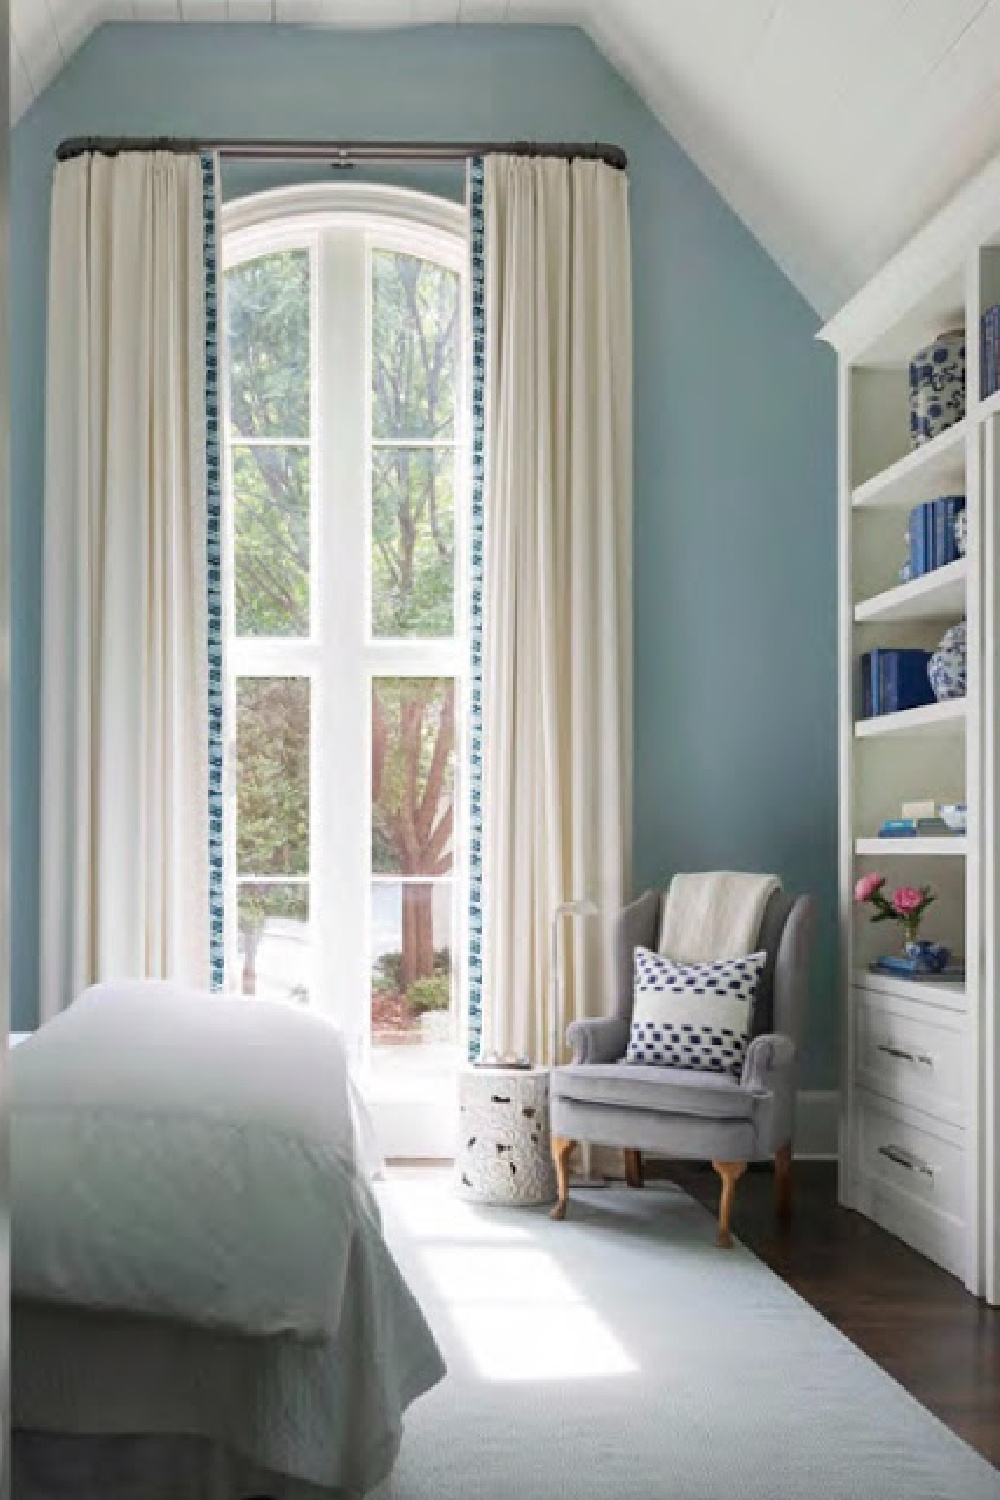 Yarmouth Blue (Benjamin Moore) on bedroom walls in a design by Sherry Hart of Design Indulgence. #yarmouthblue #paintcolors #bluepaintcolors